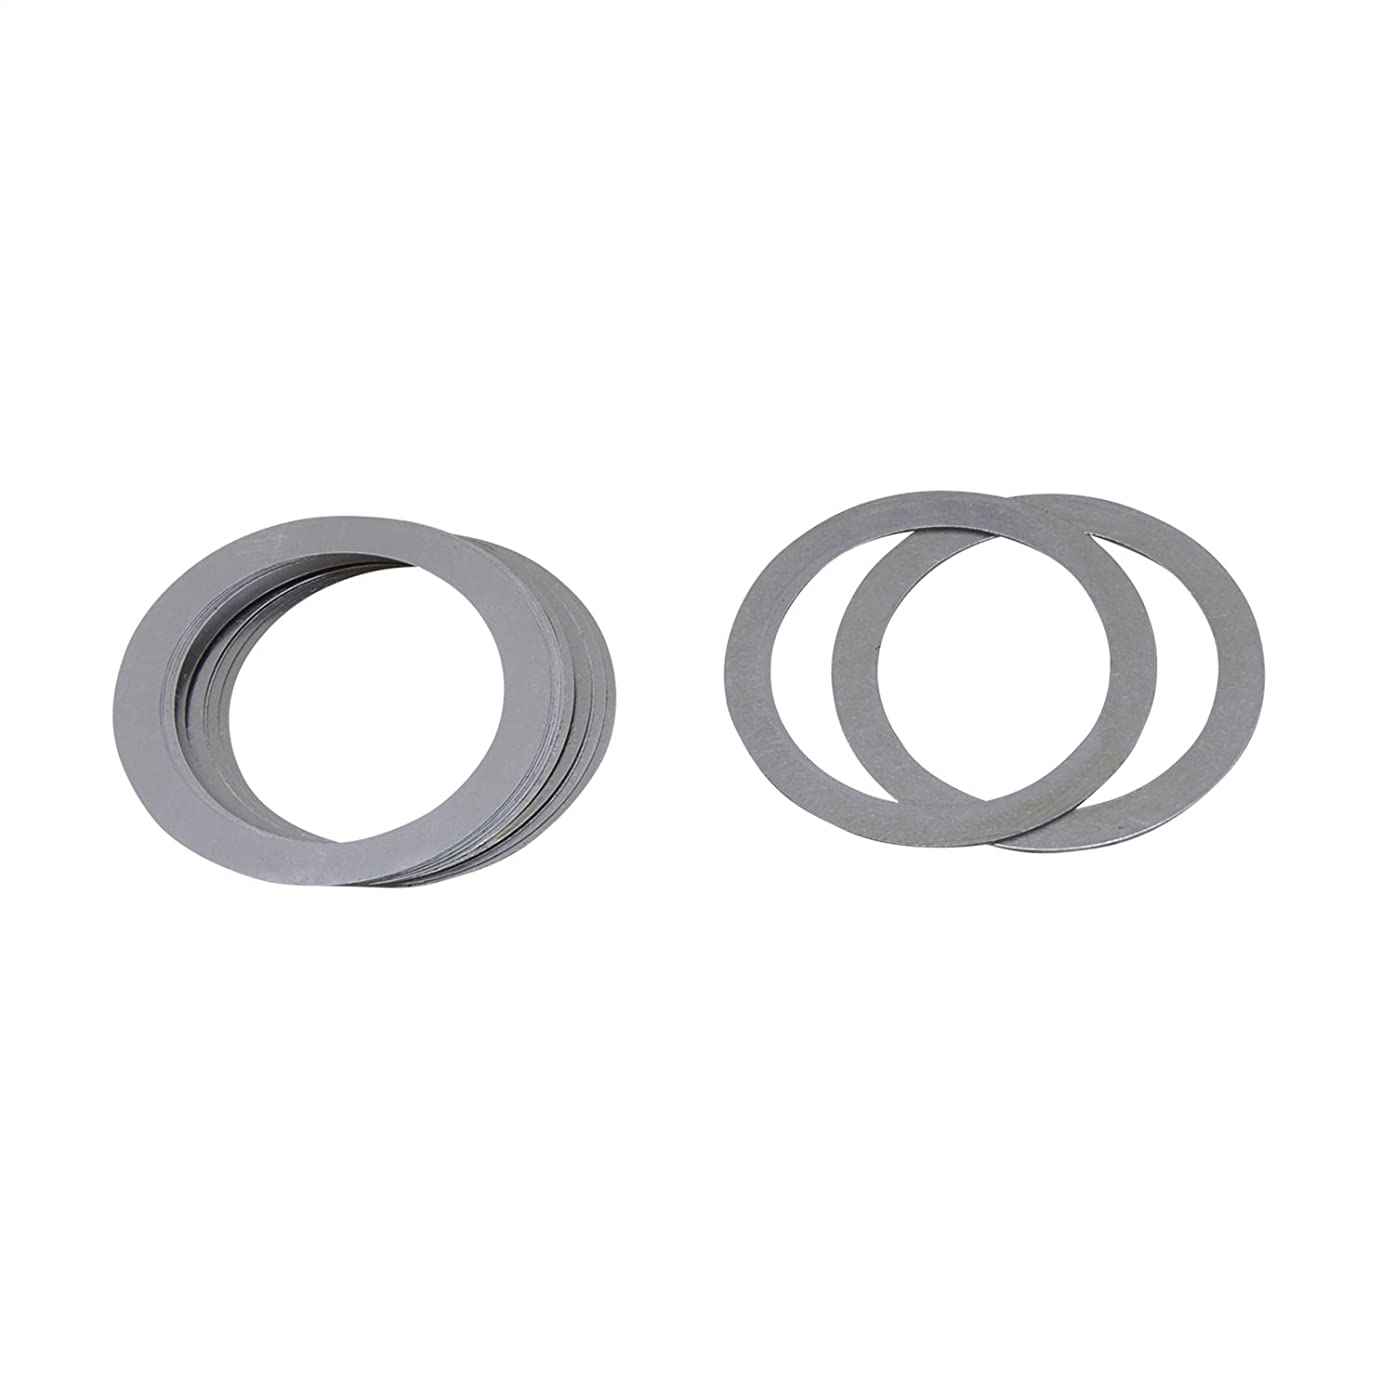 Yukon Gear & Axle (SK 706087) Replacement Carrier Shim Kit for Dana 30/44 Differential with 19-Spline Axle